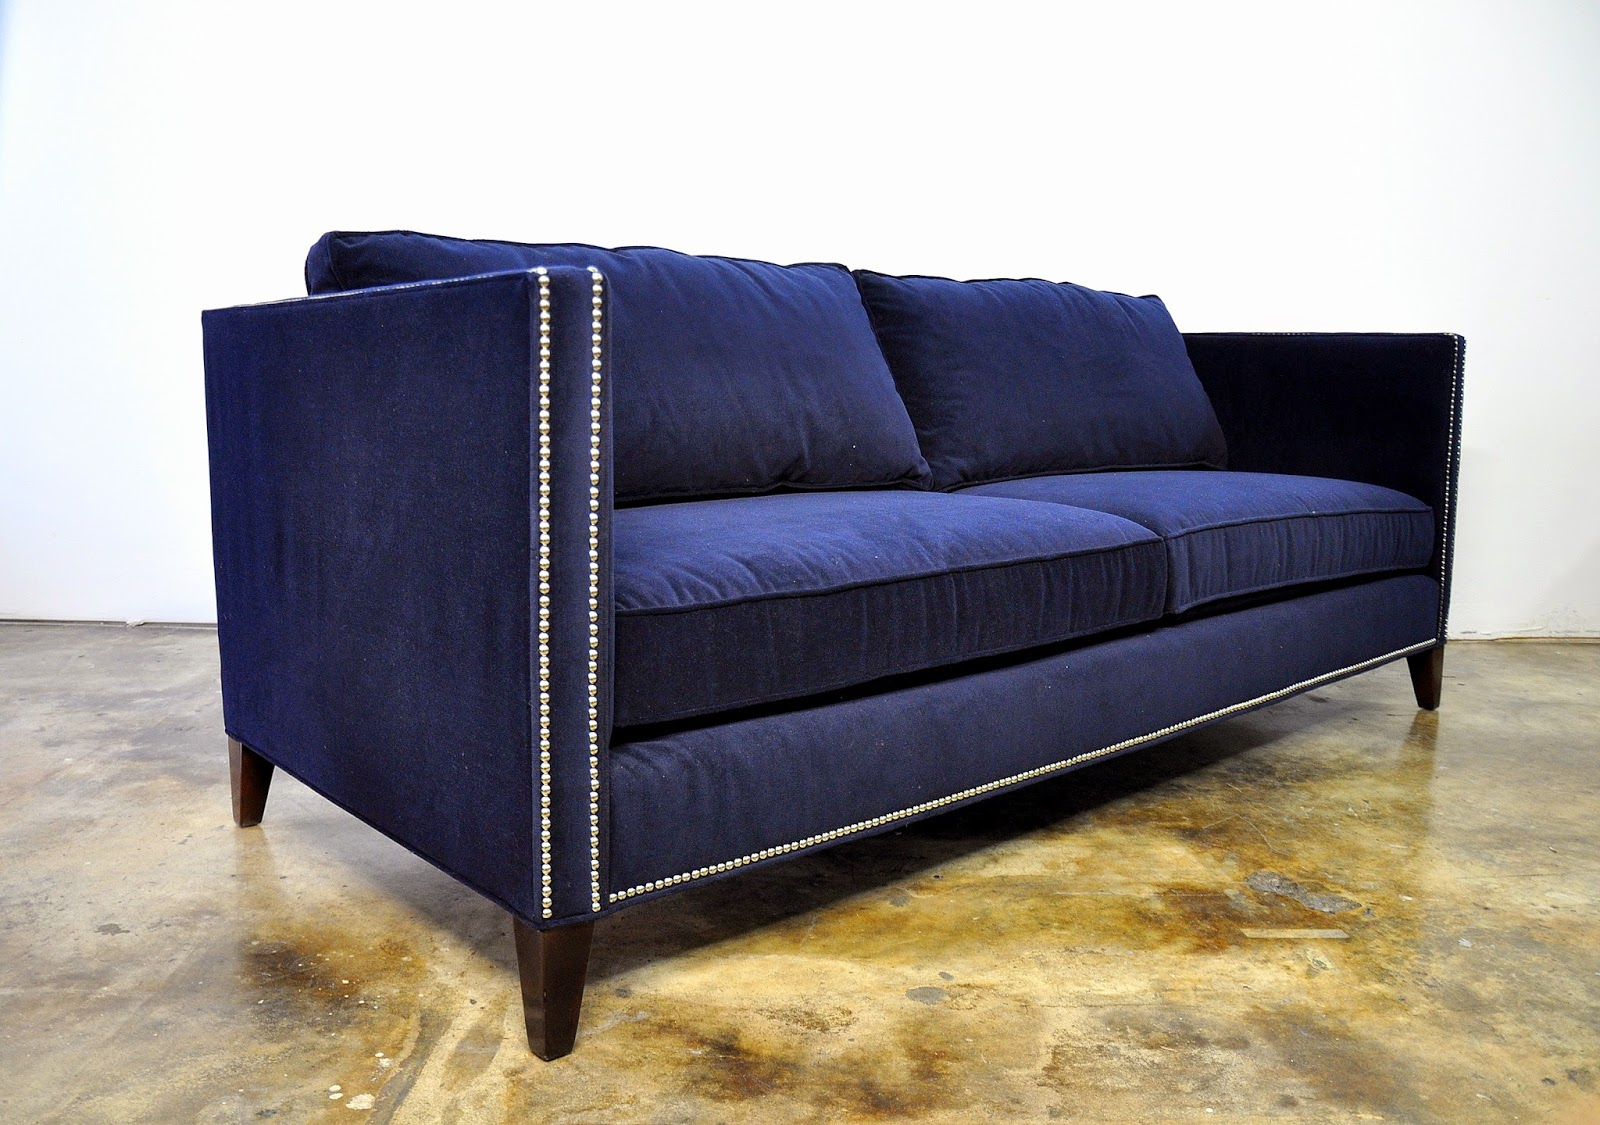 Charmant Mitchell Gold + Bob Williams Sofa